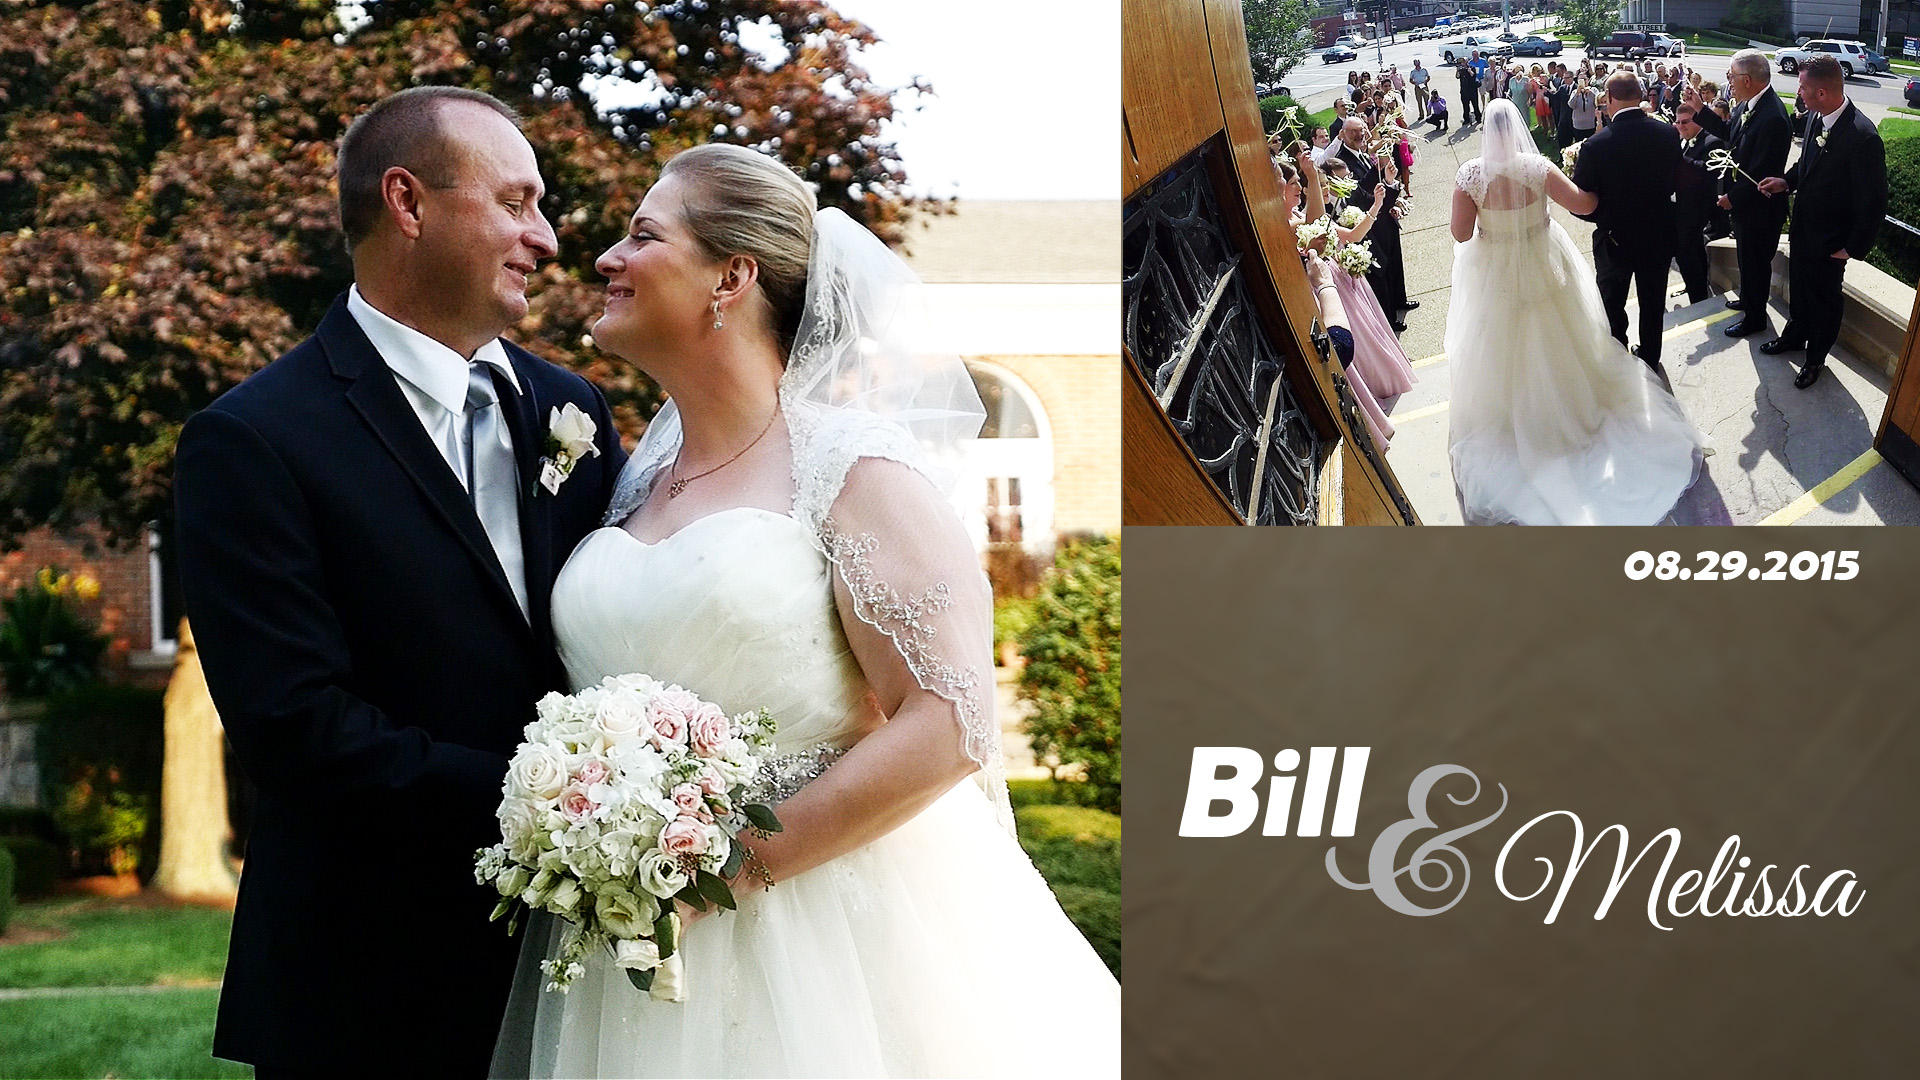 Bill & Melissa – Buffalo Wedding Video